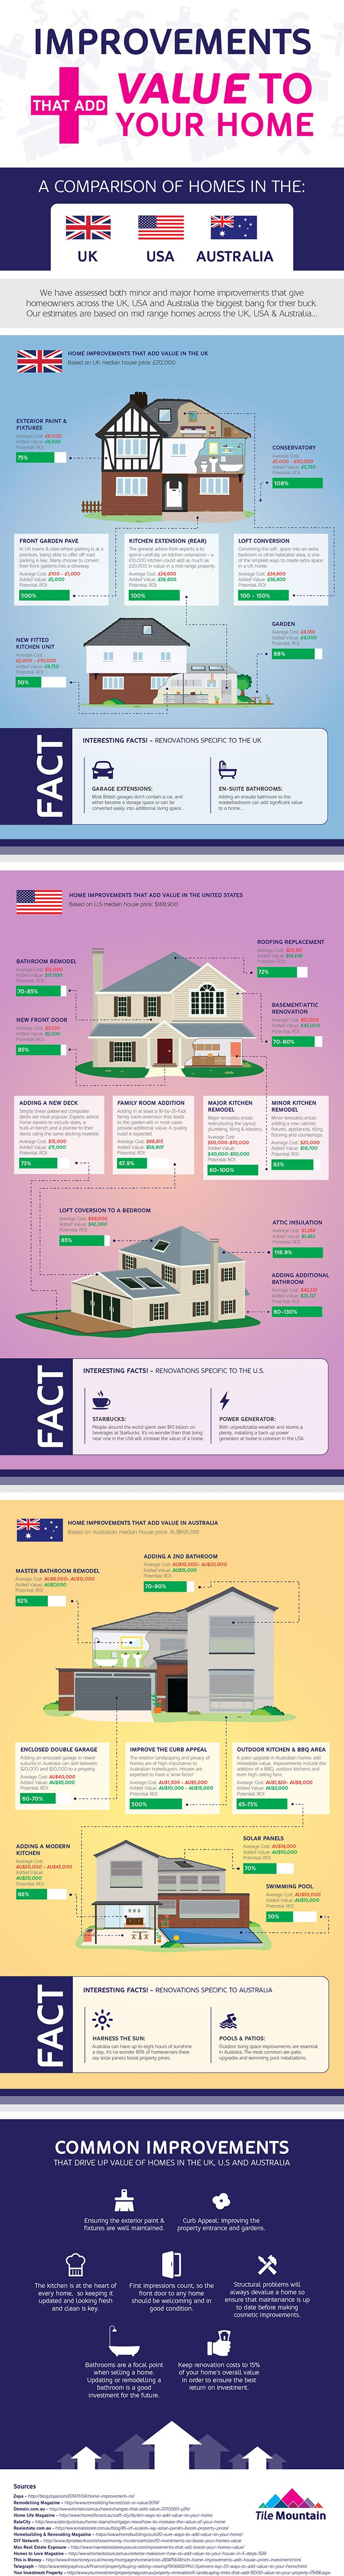 improvements that add value to your house infographic house